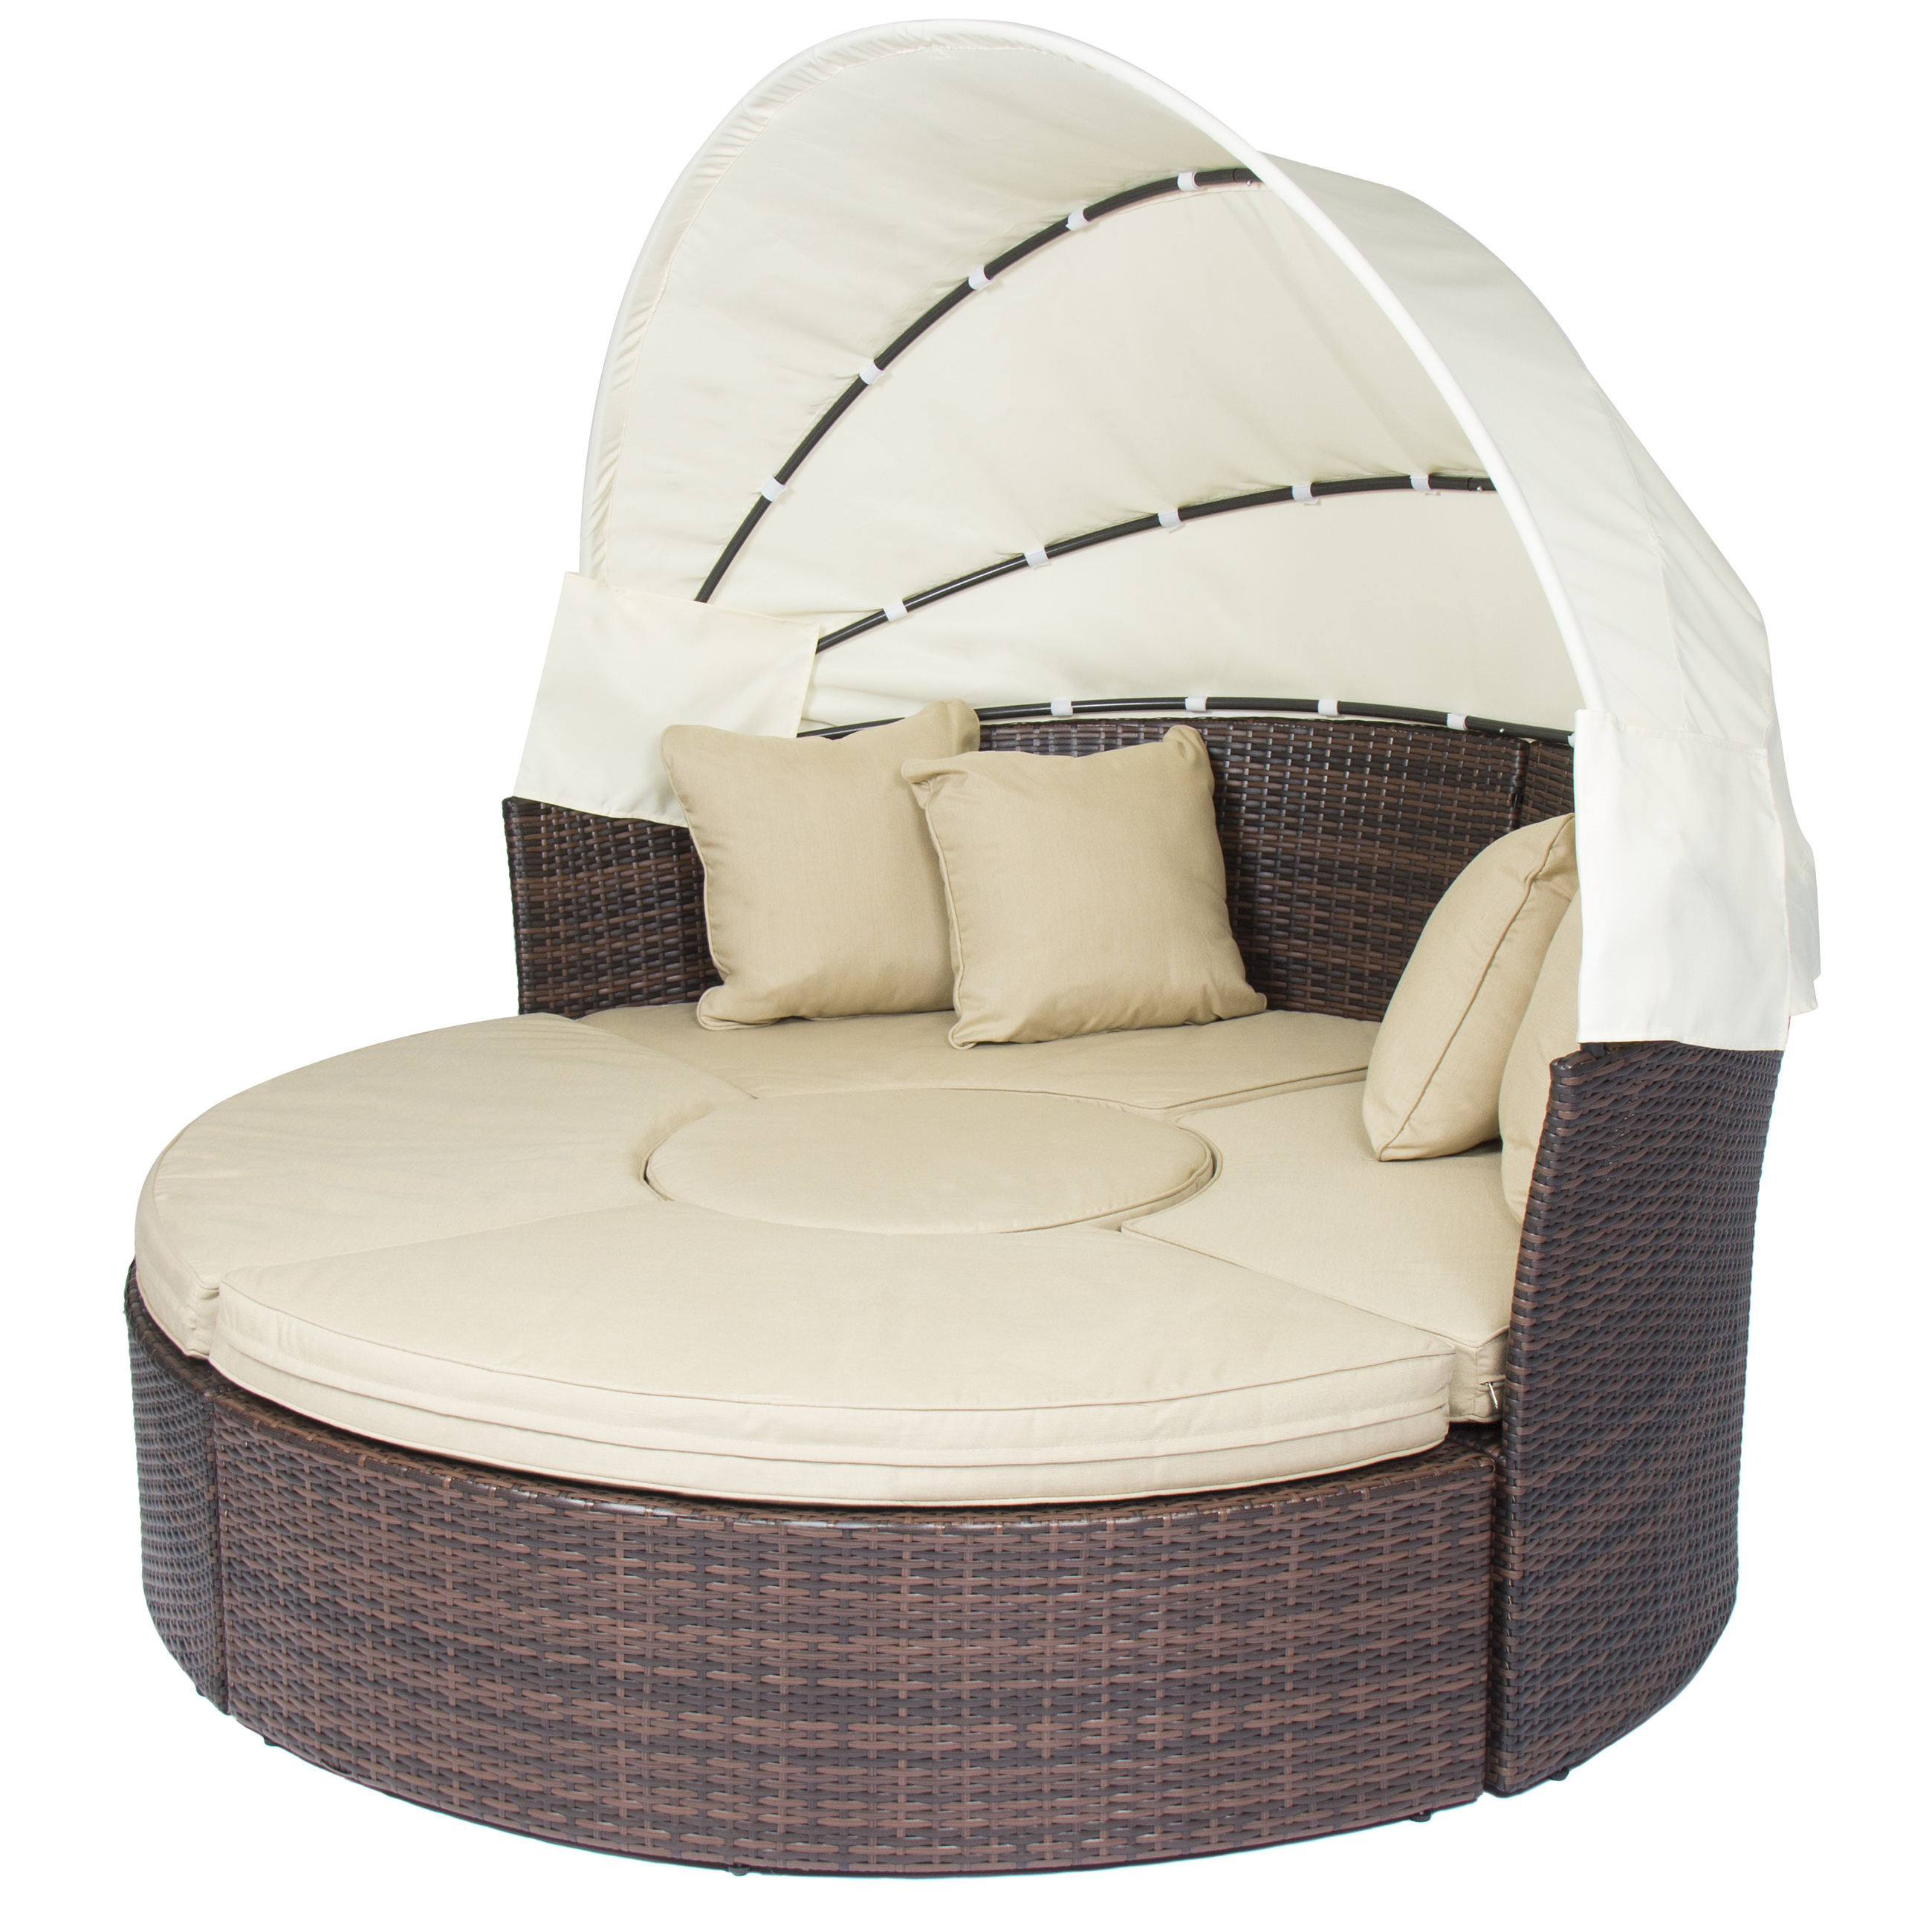 Fashionable Round Sofa Chairs For Best Choice Products Outdoor Patio Sofa Furniture Round Retractable (View 7 of 20)